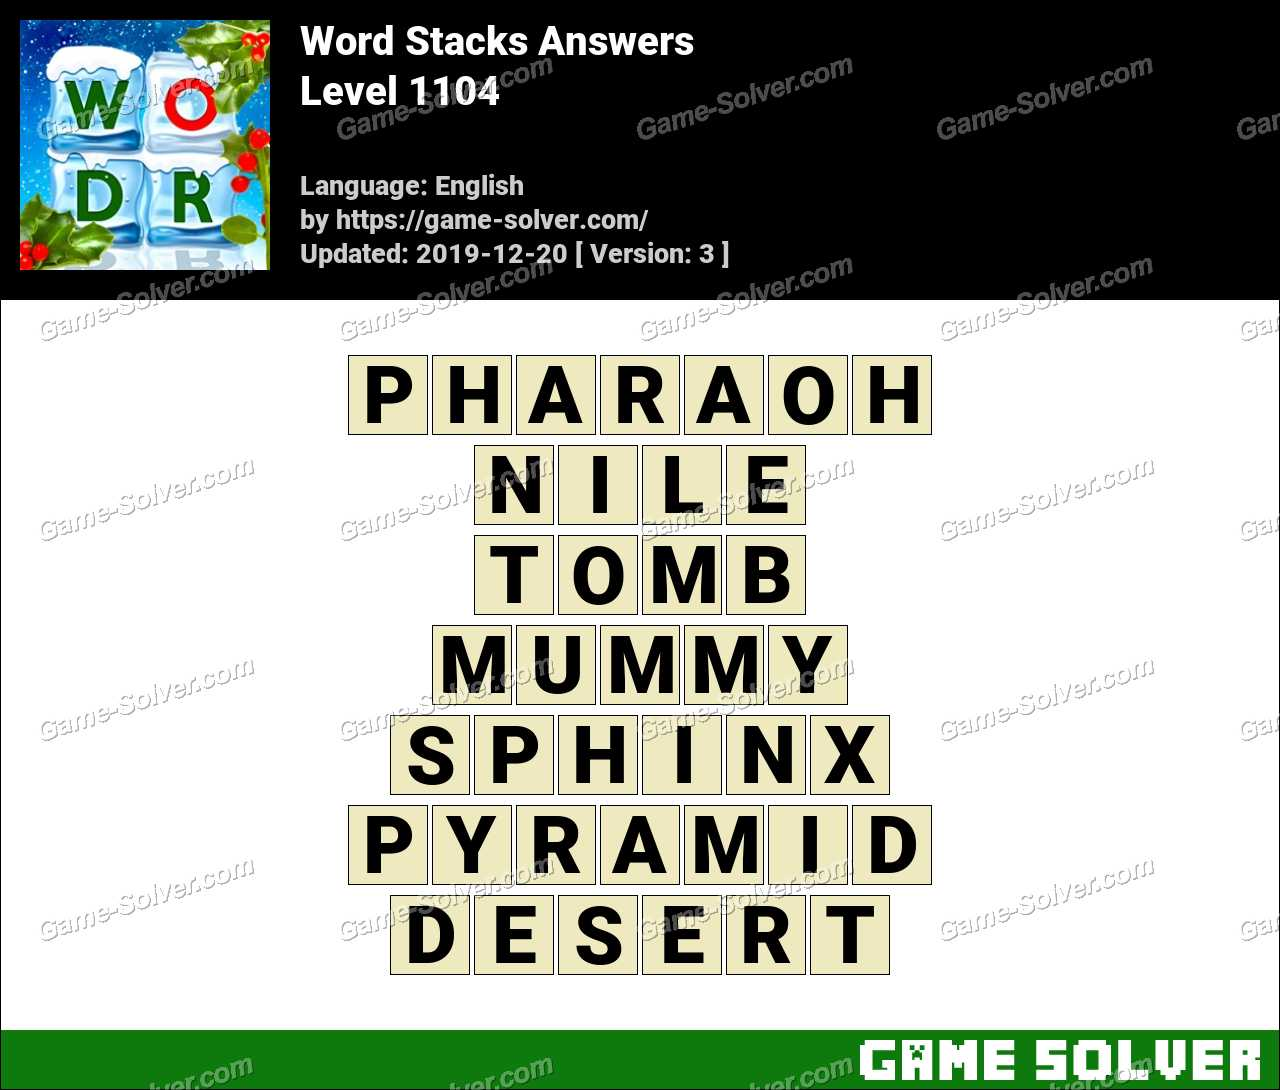 Word Stacks Level 1104 Answers